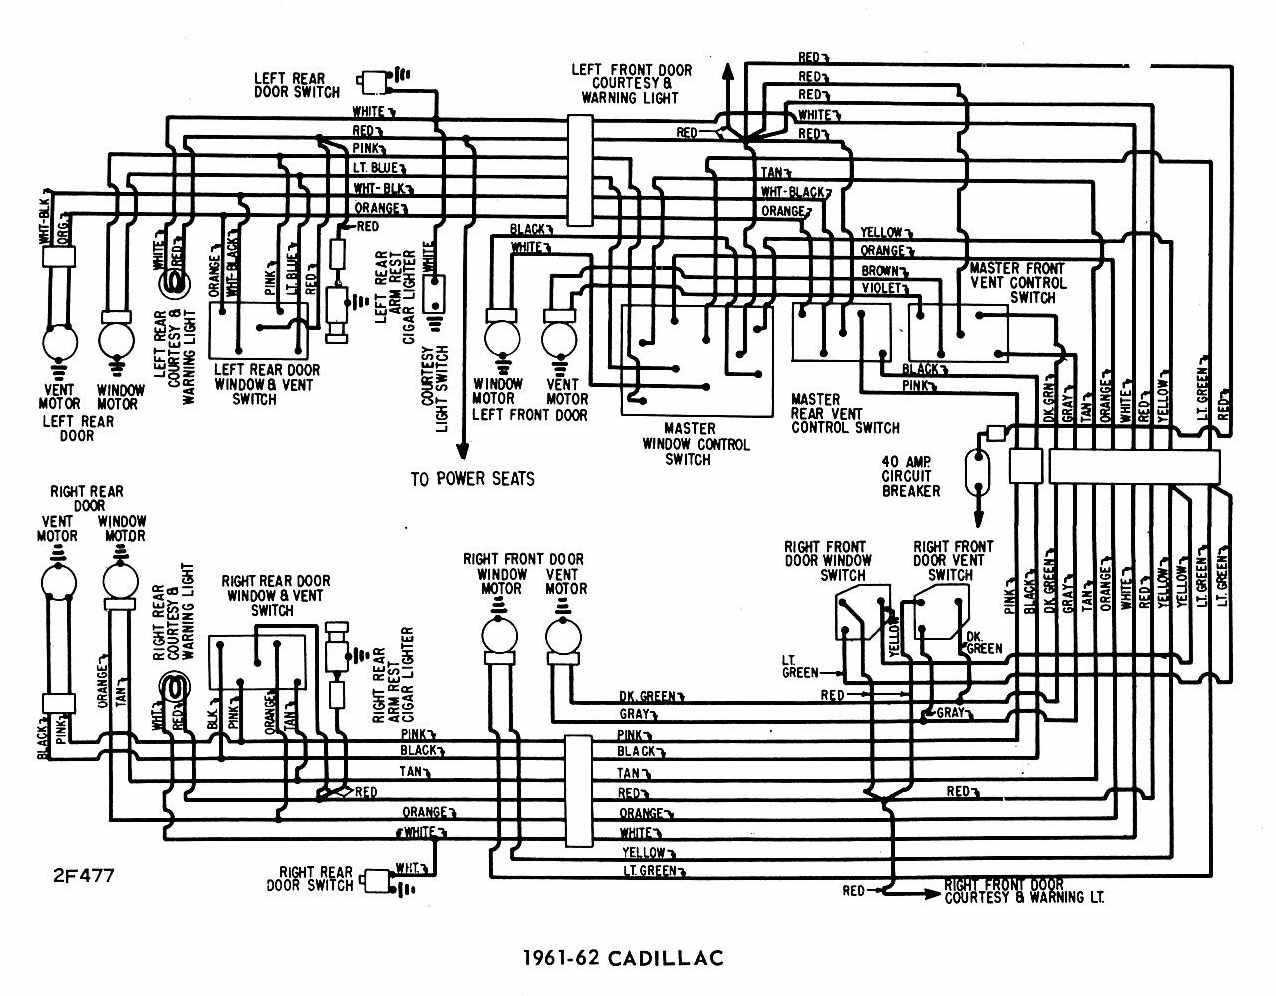 Miraculous Cadillac Wiring Diagram 1961 Cadillac Wiring Diagram Cadillac Wiring Digital Resources Indicompassionincorg